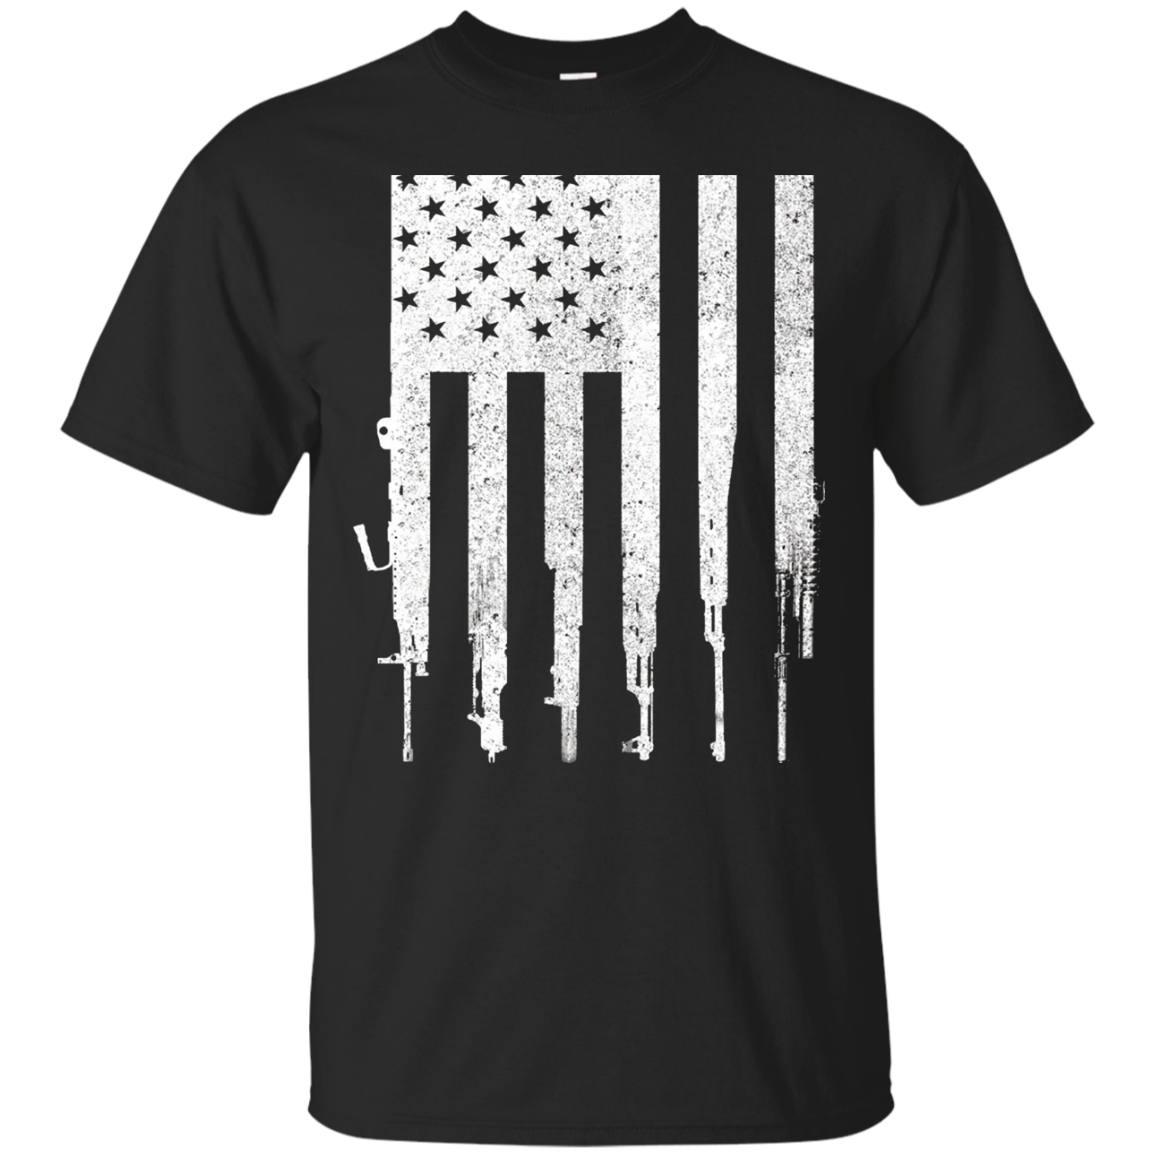 Men's Rifle American Flag Shirt Gun Rights T Shirt